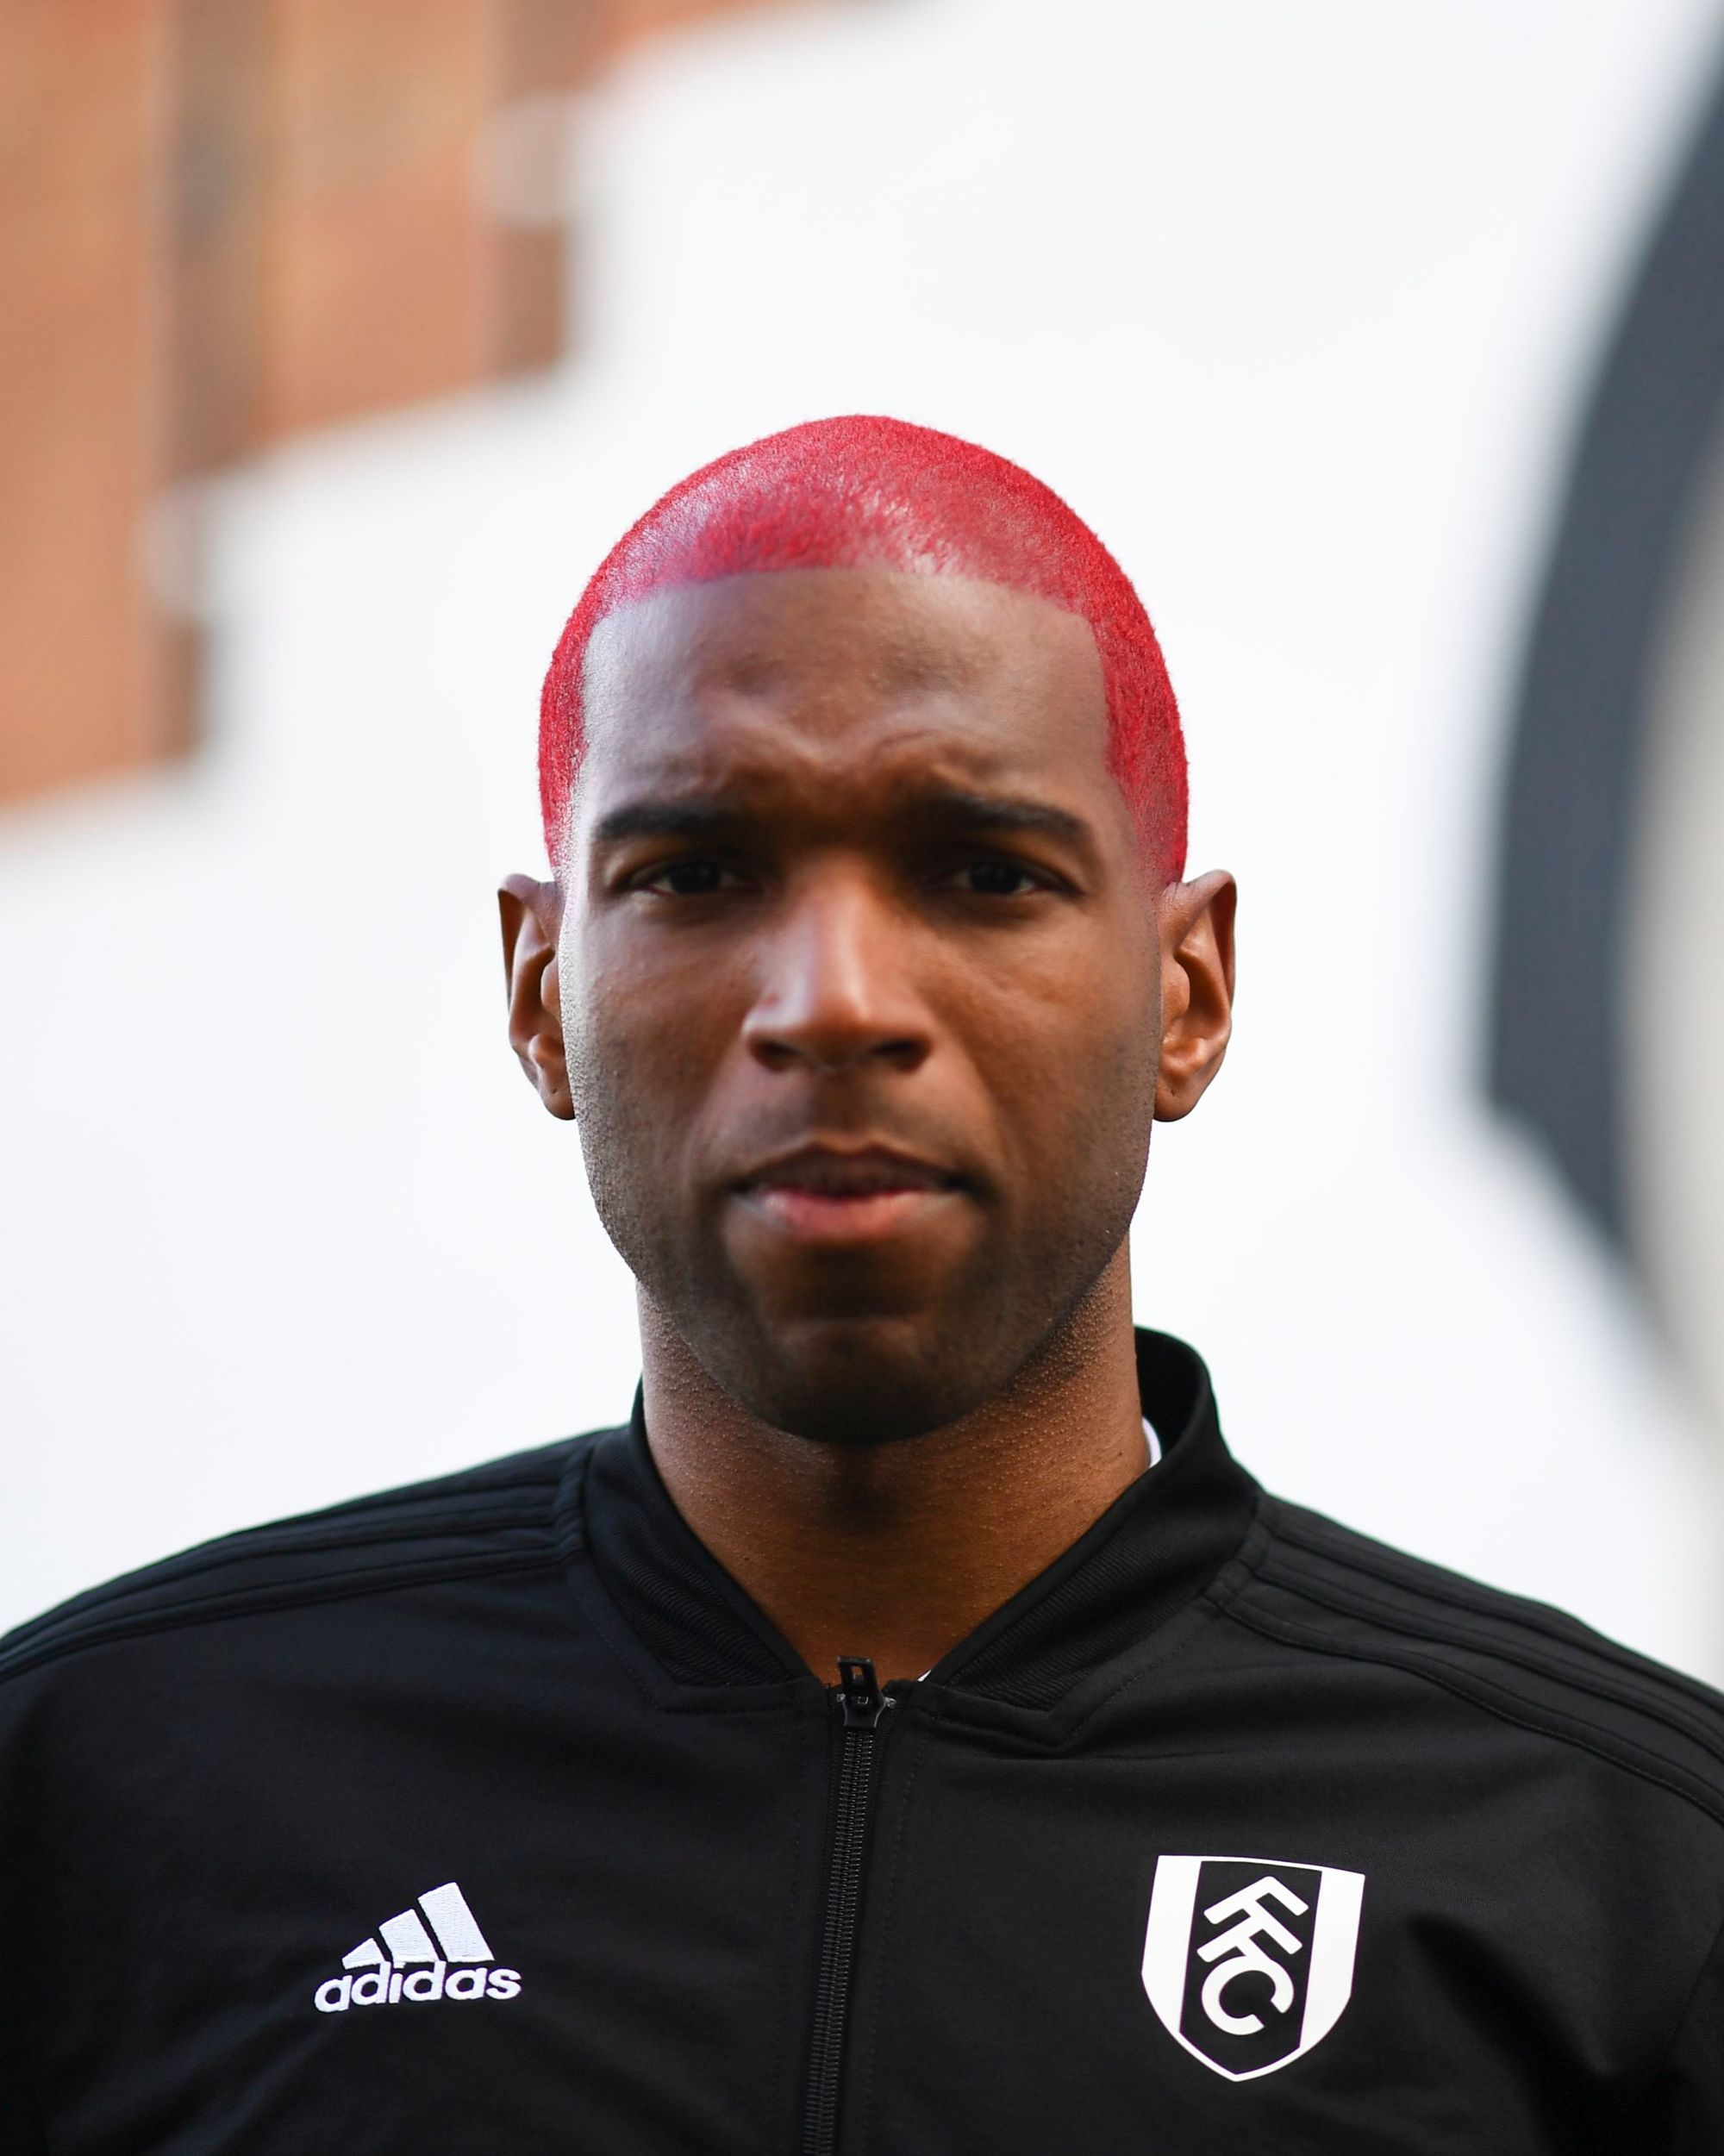 Footballer hairstyles: Ryan Babel with short bright pink hair wearing black football shirt.